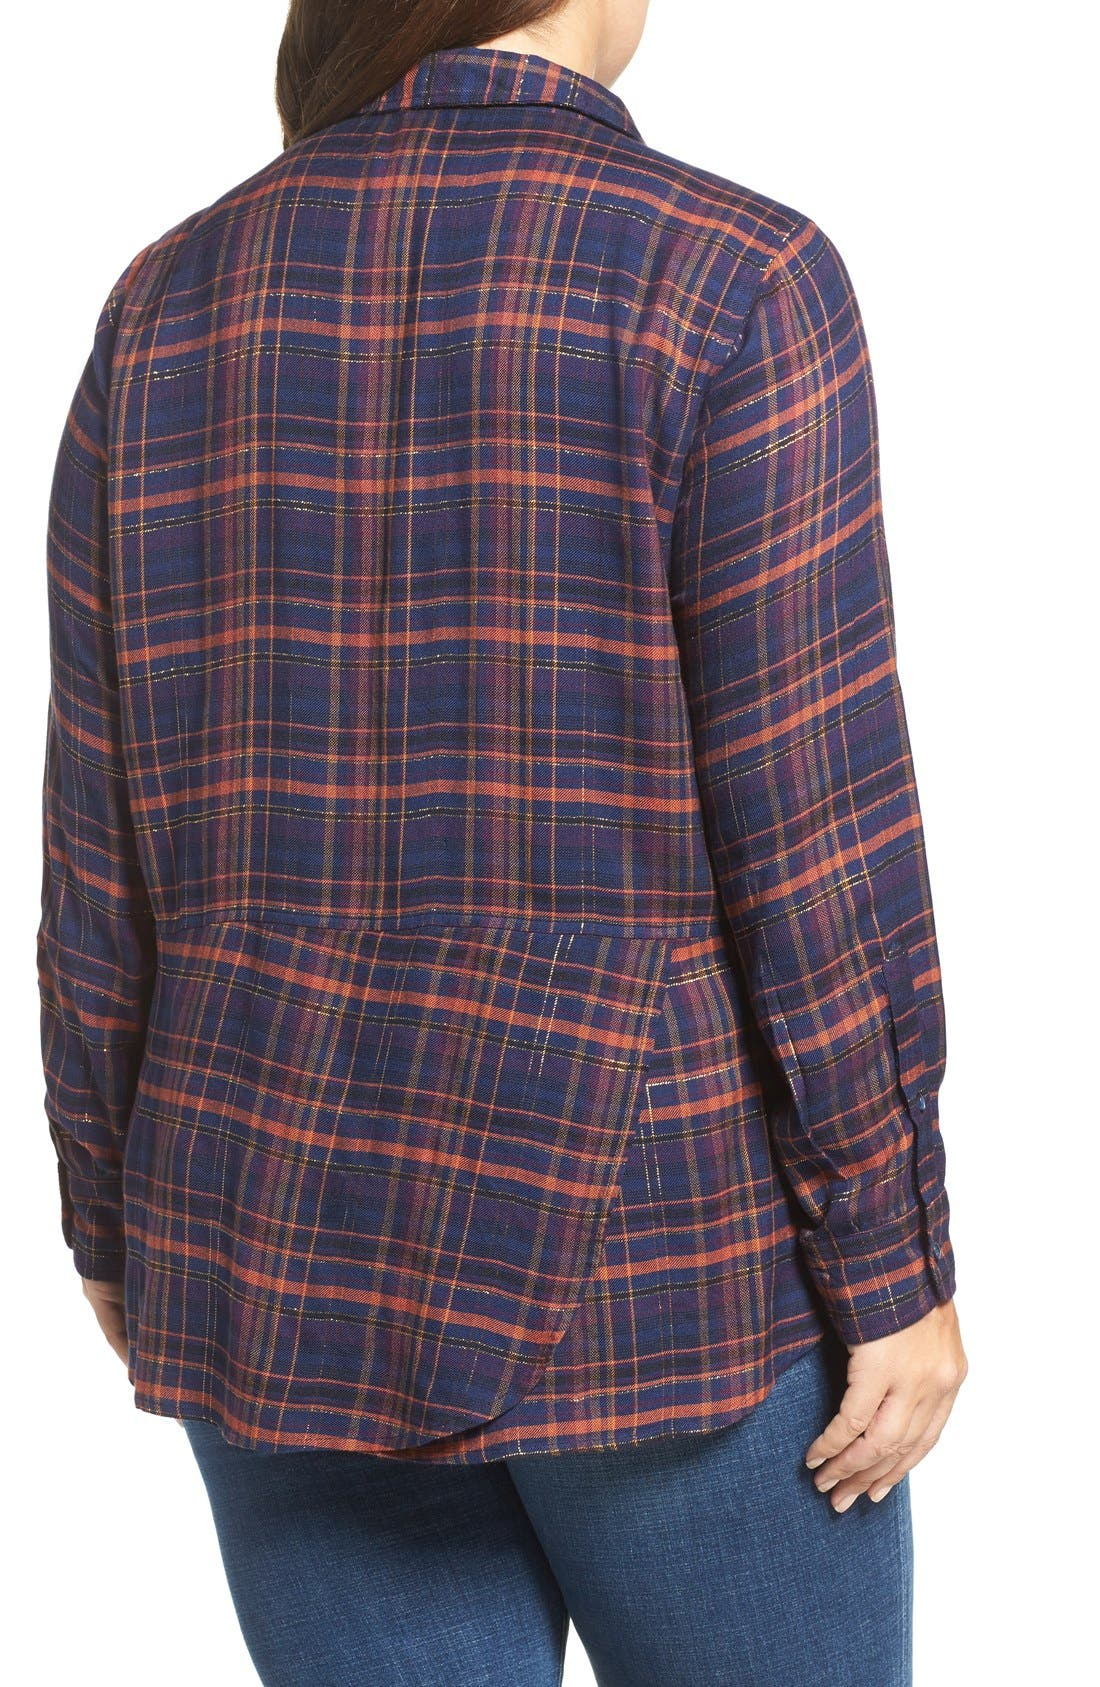 Back Overlay Plaid Shirt,                             Alternate thumbnail 6, color,                             460